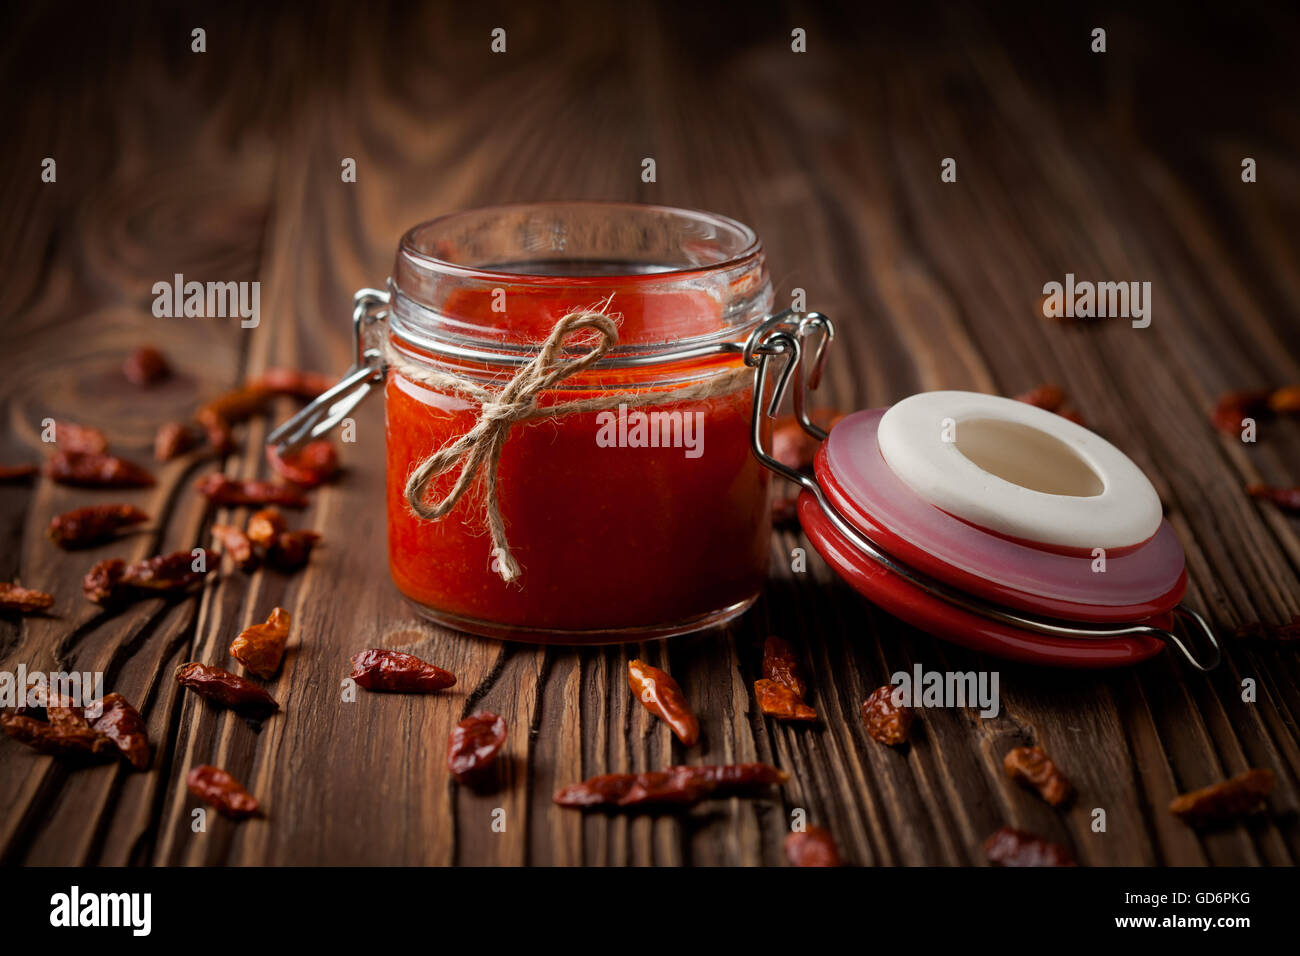 Sriracha sauce chili bricolage naturel Photo Stock